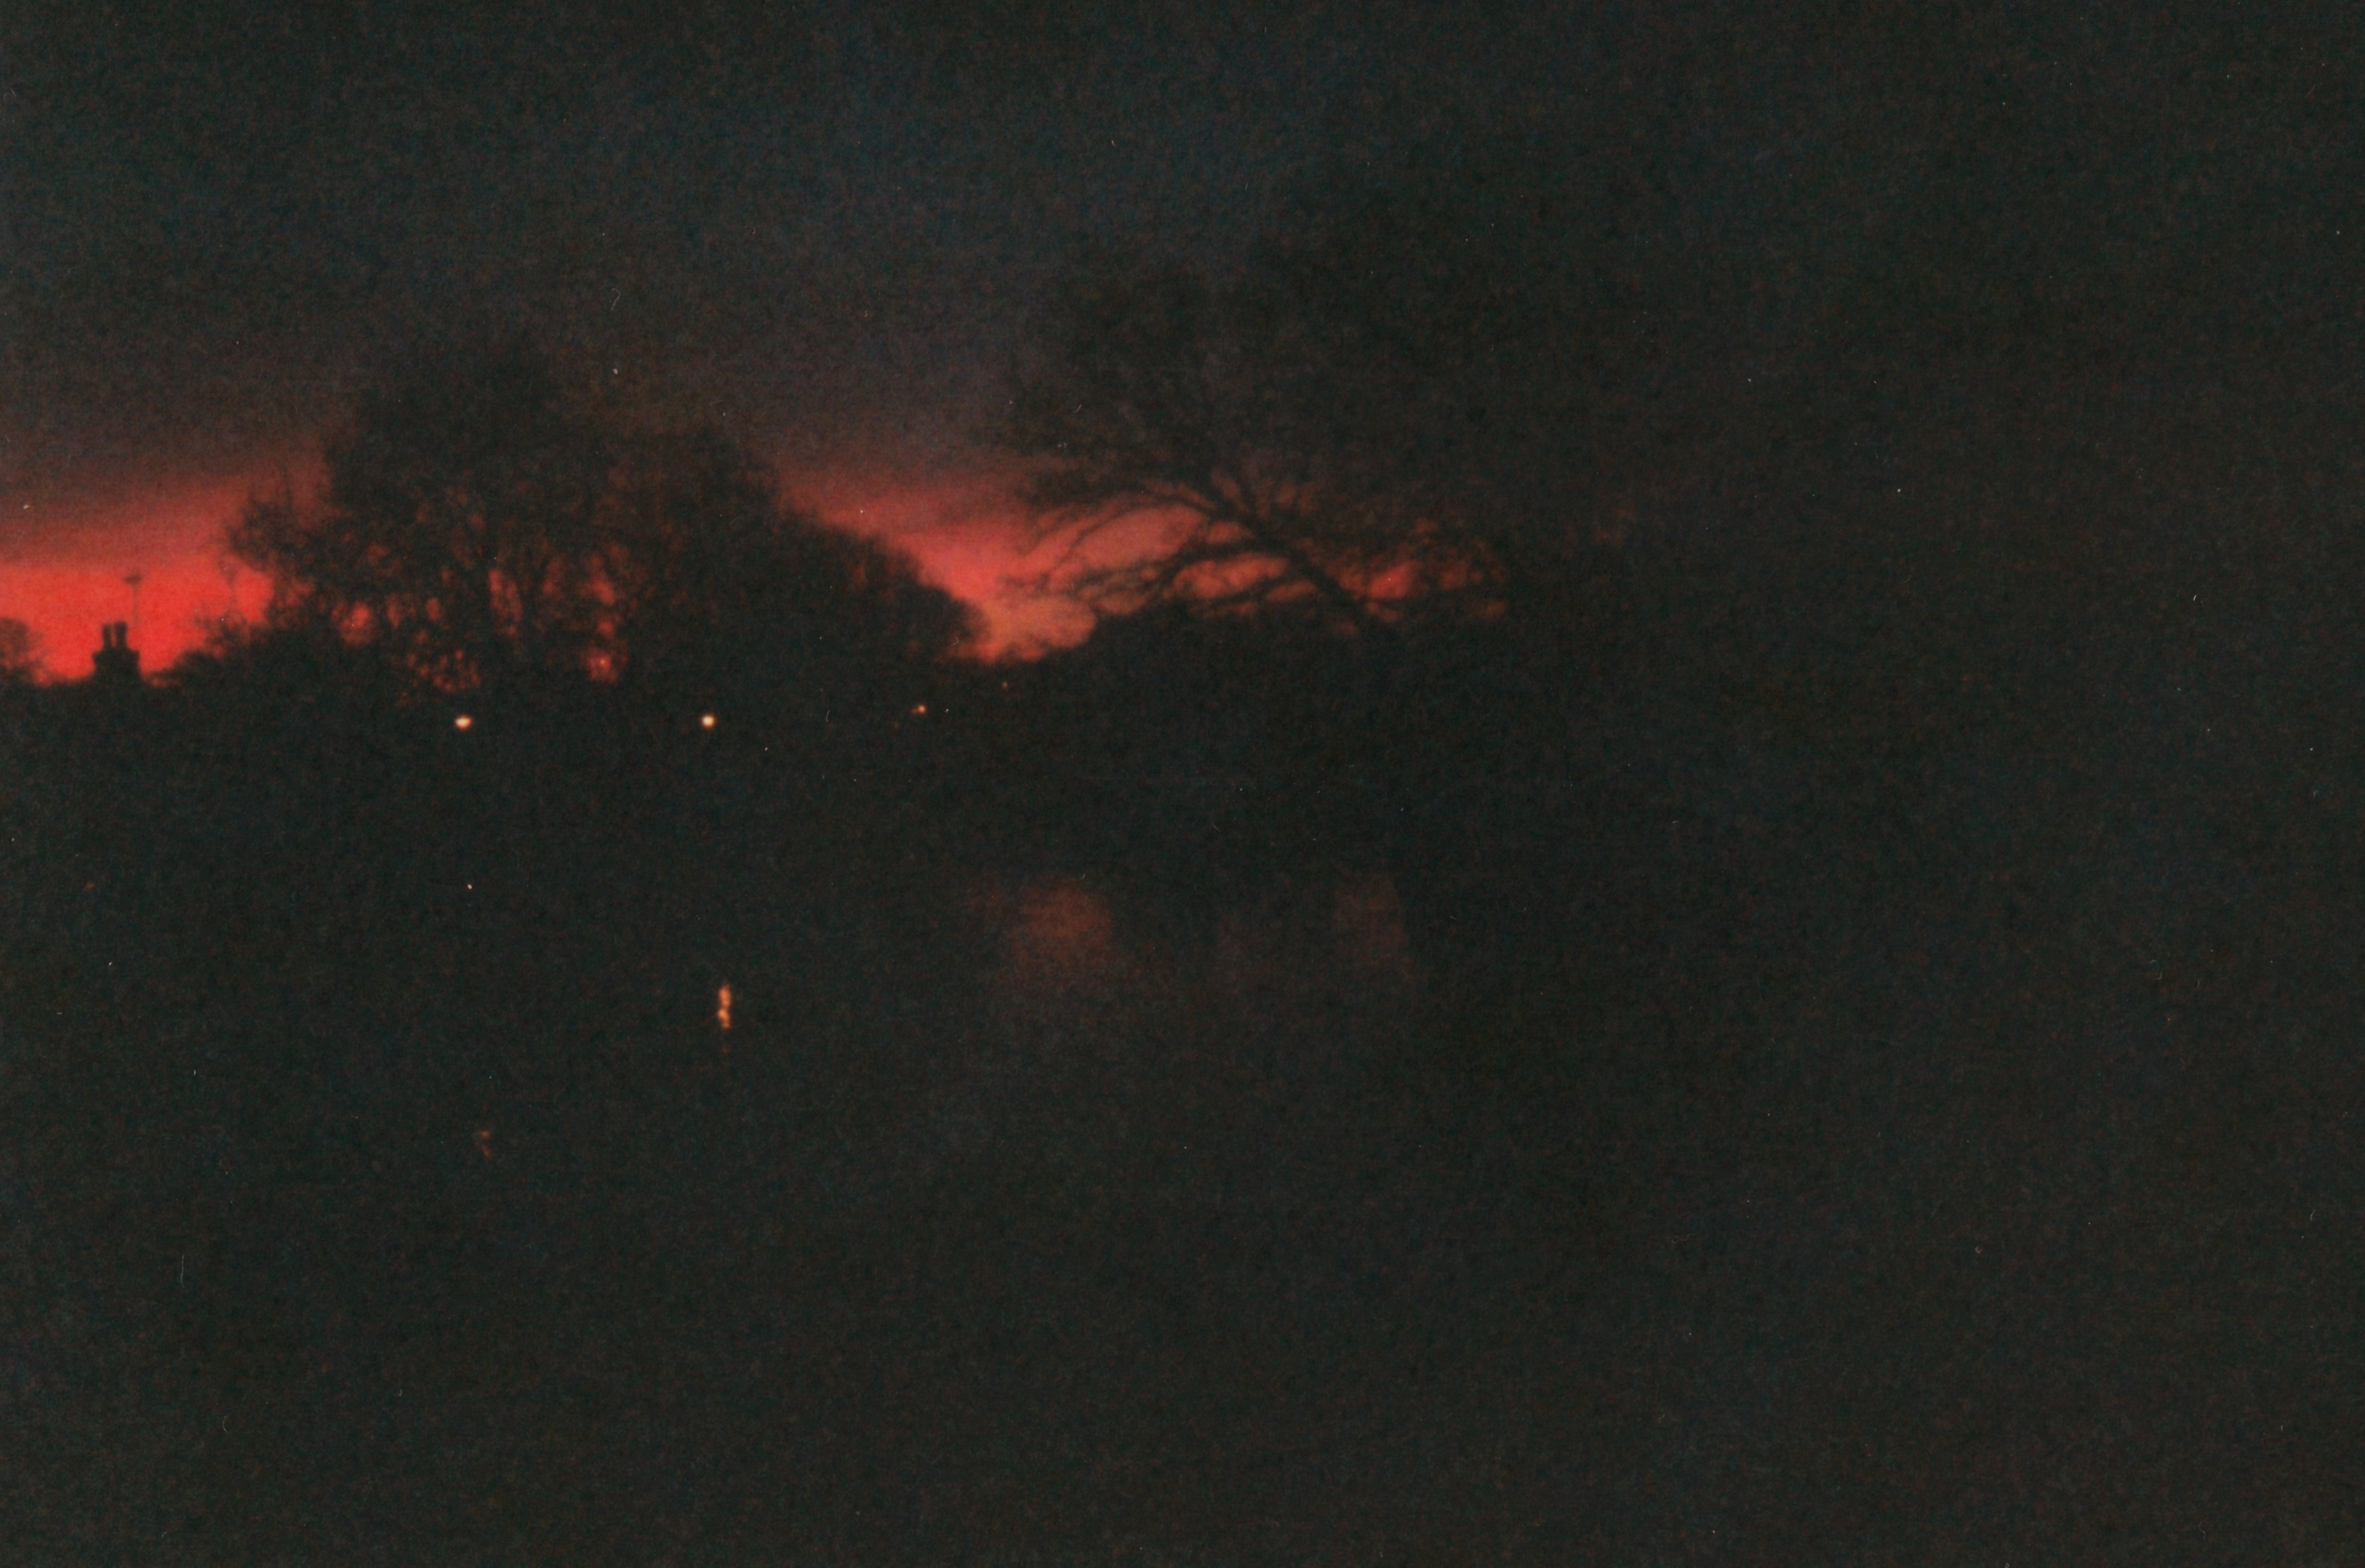 A photo of trees, very dark, with a red sky background